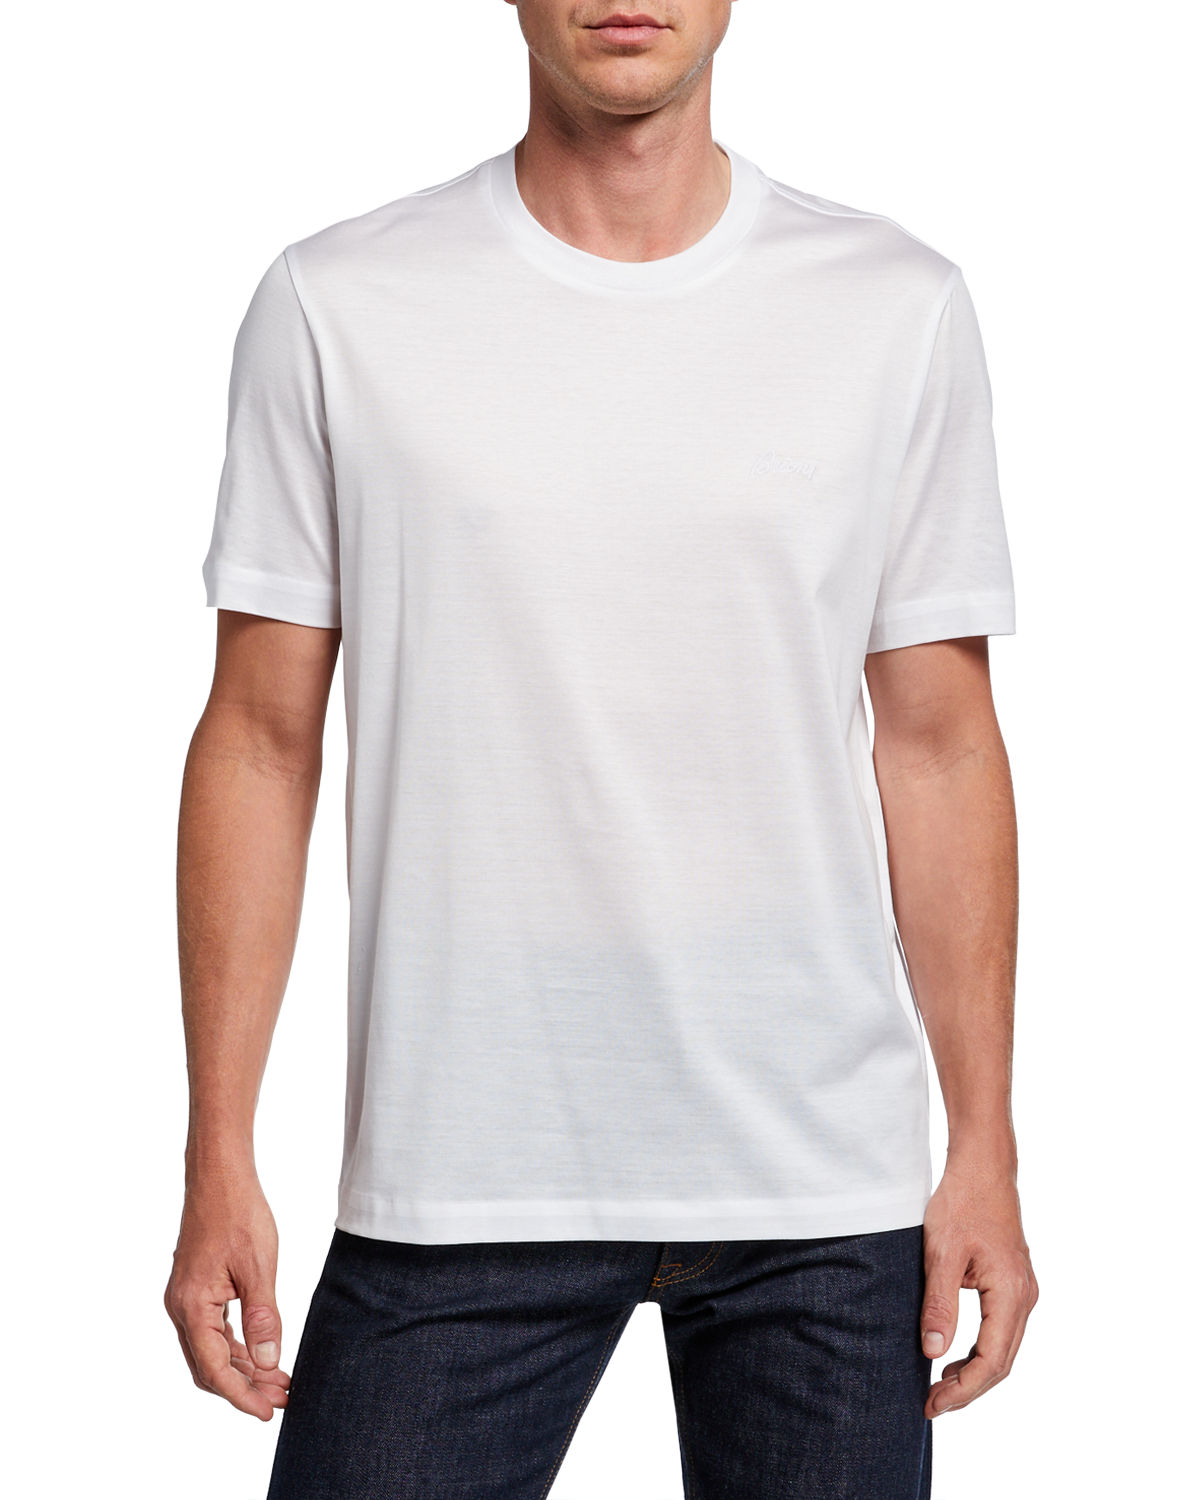 Brioni T-shirts MEN'S SOLID COTTON T-SHIRT